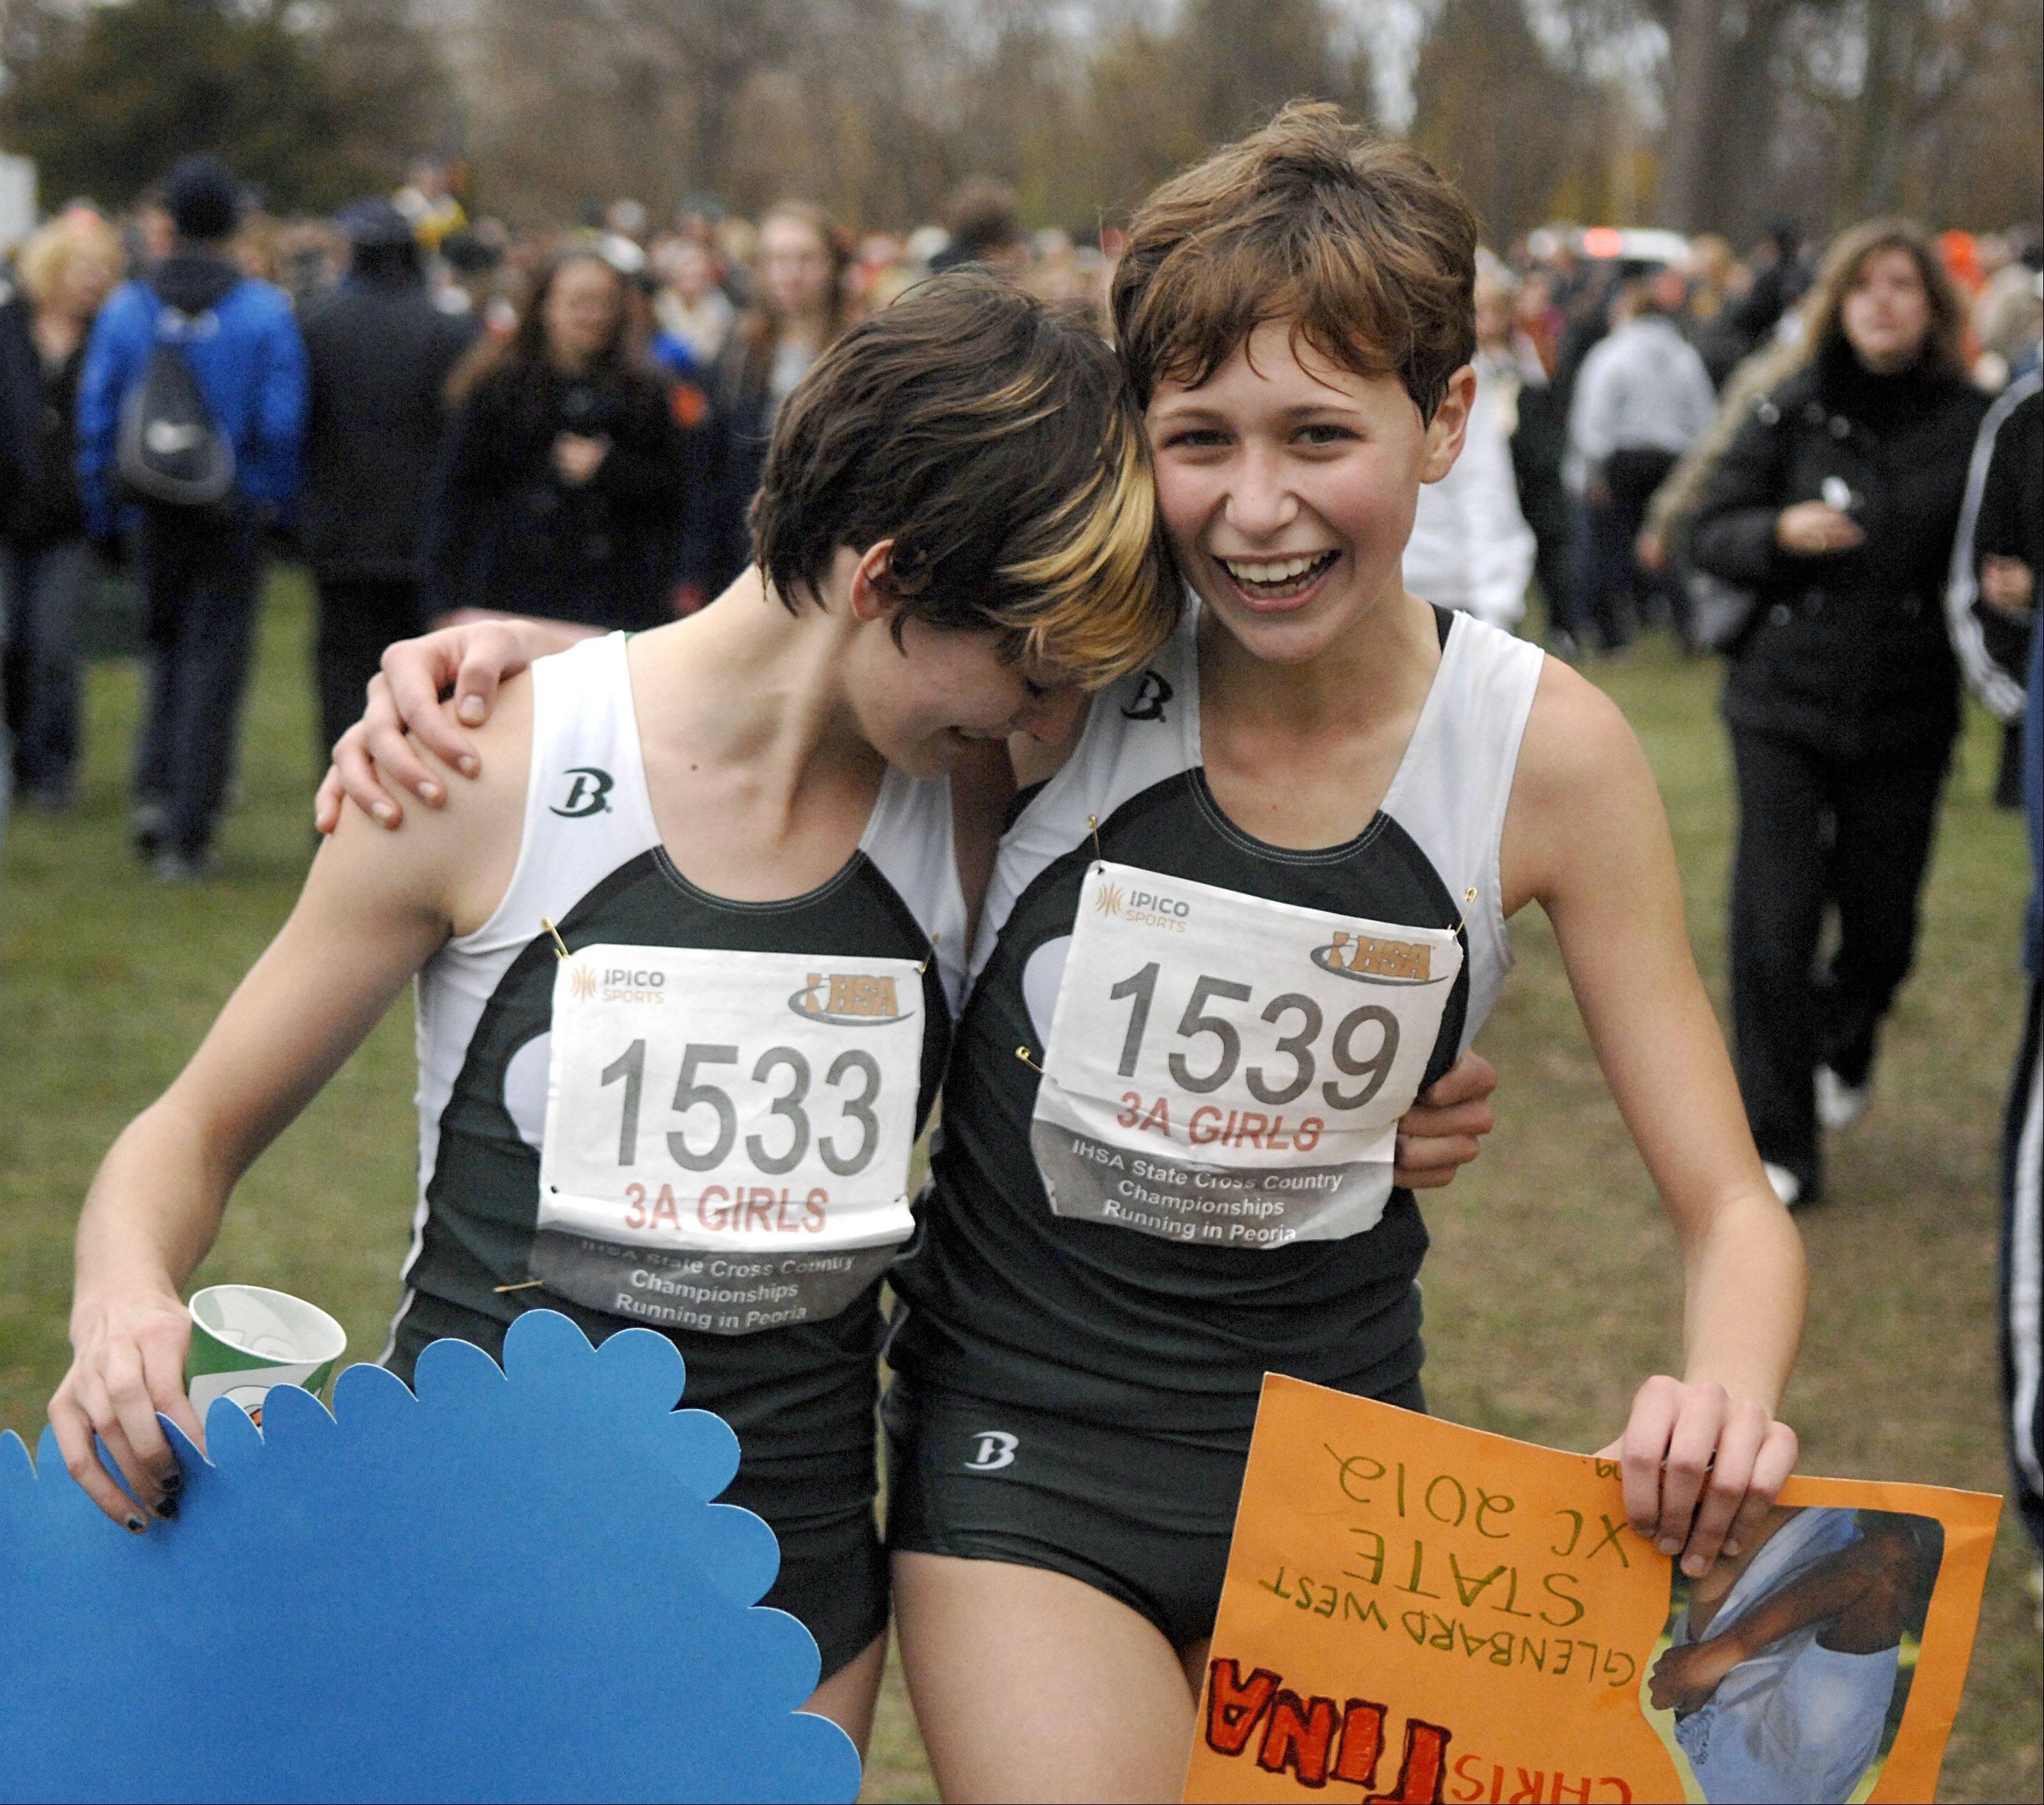 Glenbard South's Cynthia Mote and Christina Sedall embrace as they make their way back to their tent after learning of their team's third place win in the state 3A cross country final in Peoria on Saturday, November 3. It's also Mote's 18th birthday.